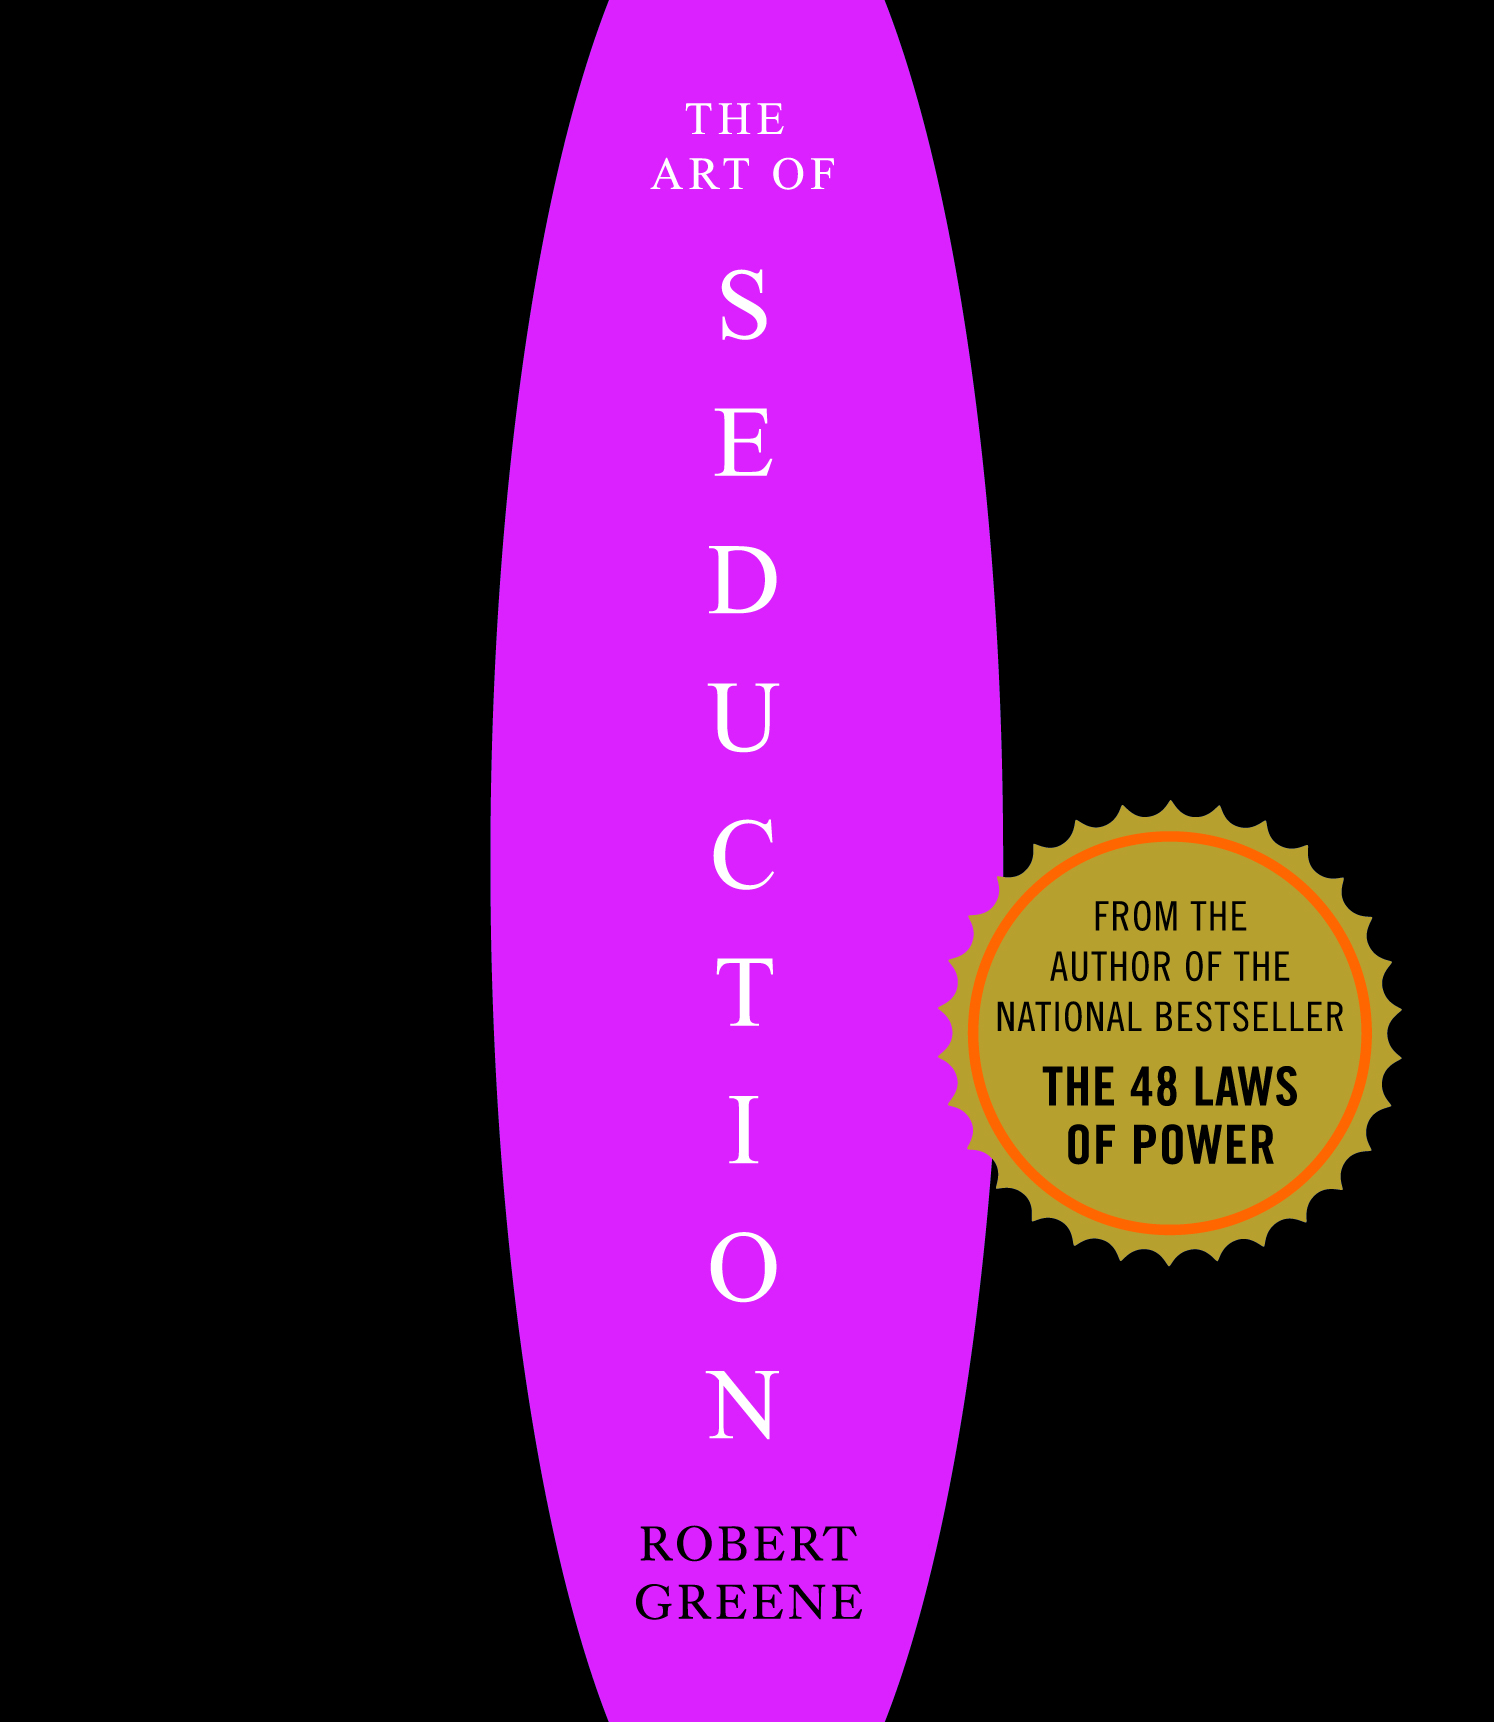 Book Review: The Art of Seduction by Robert Greene